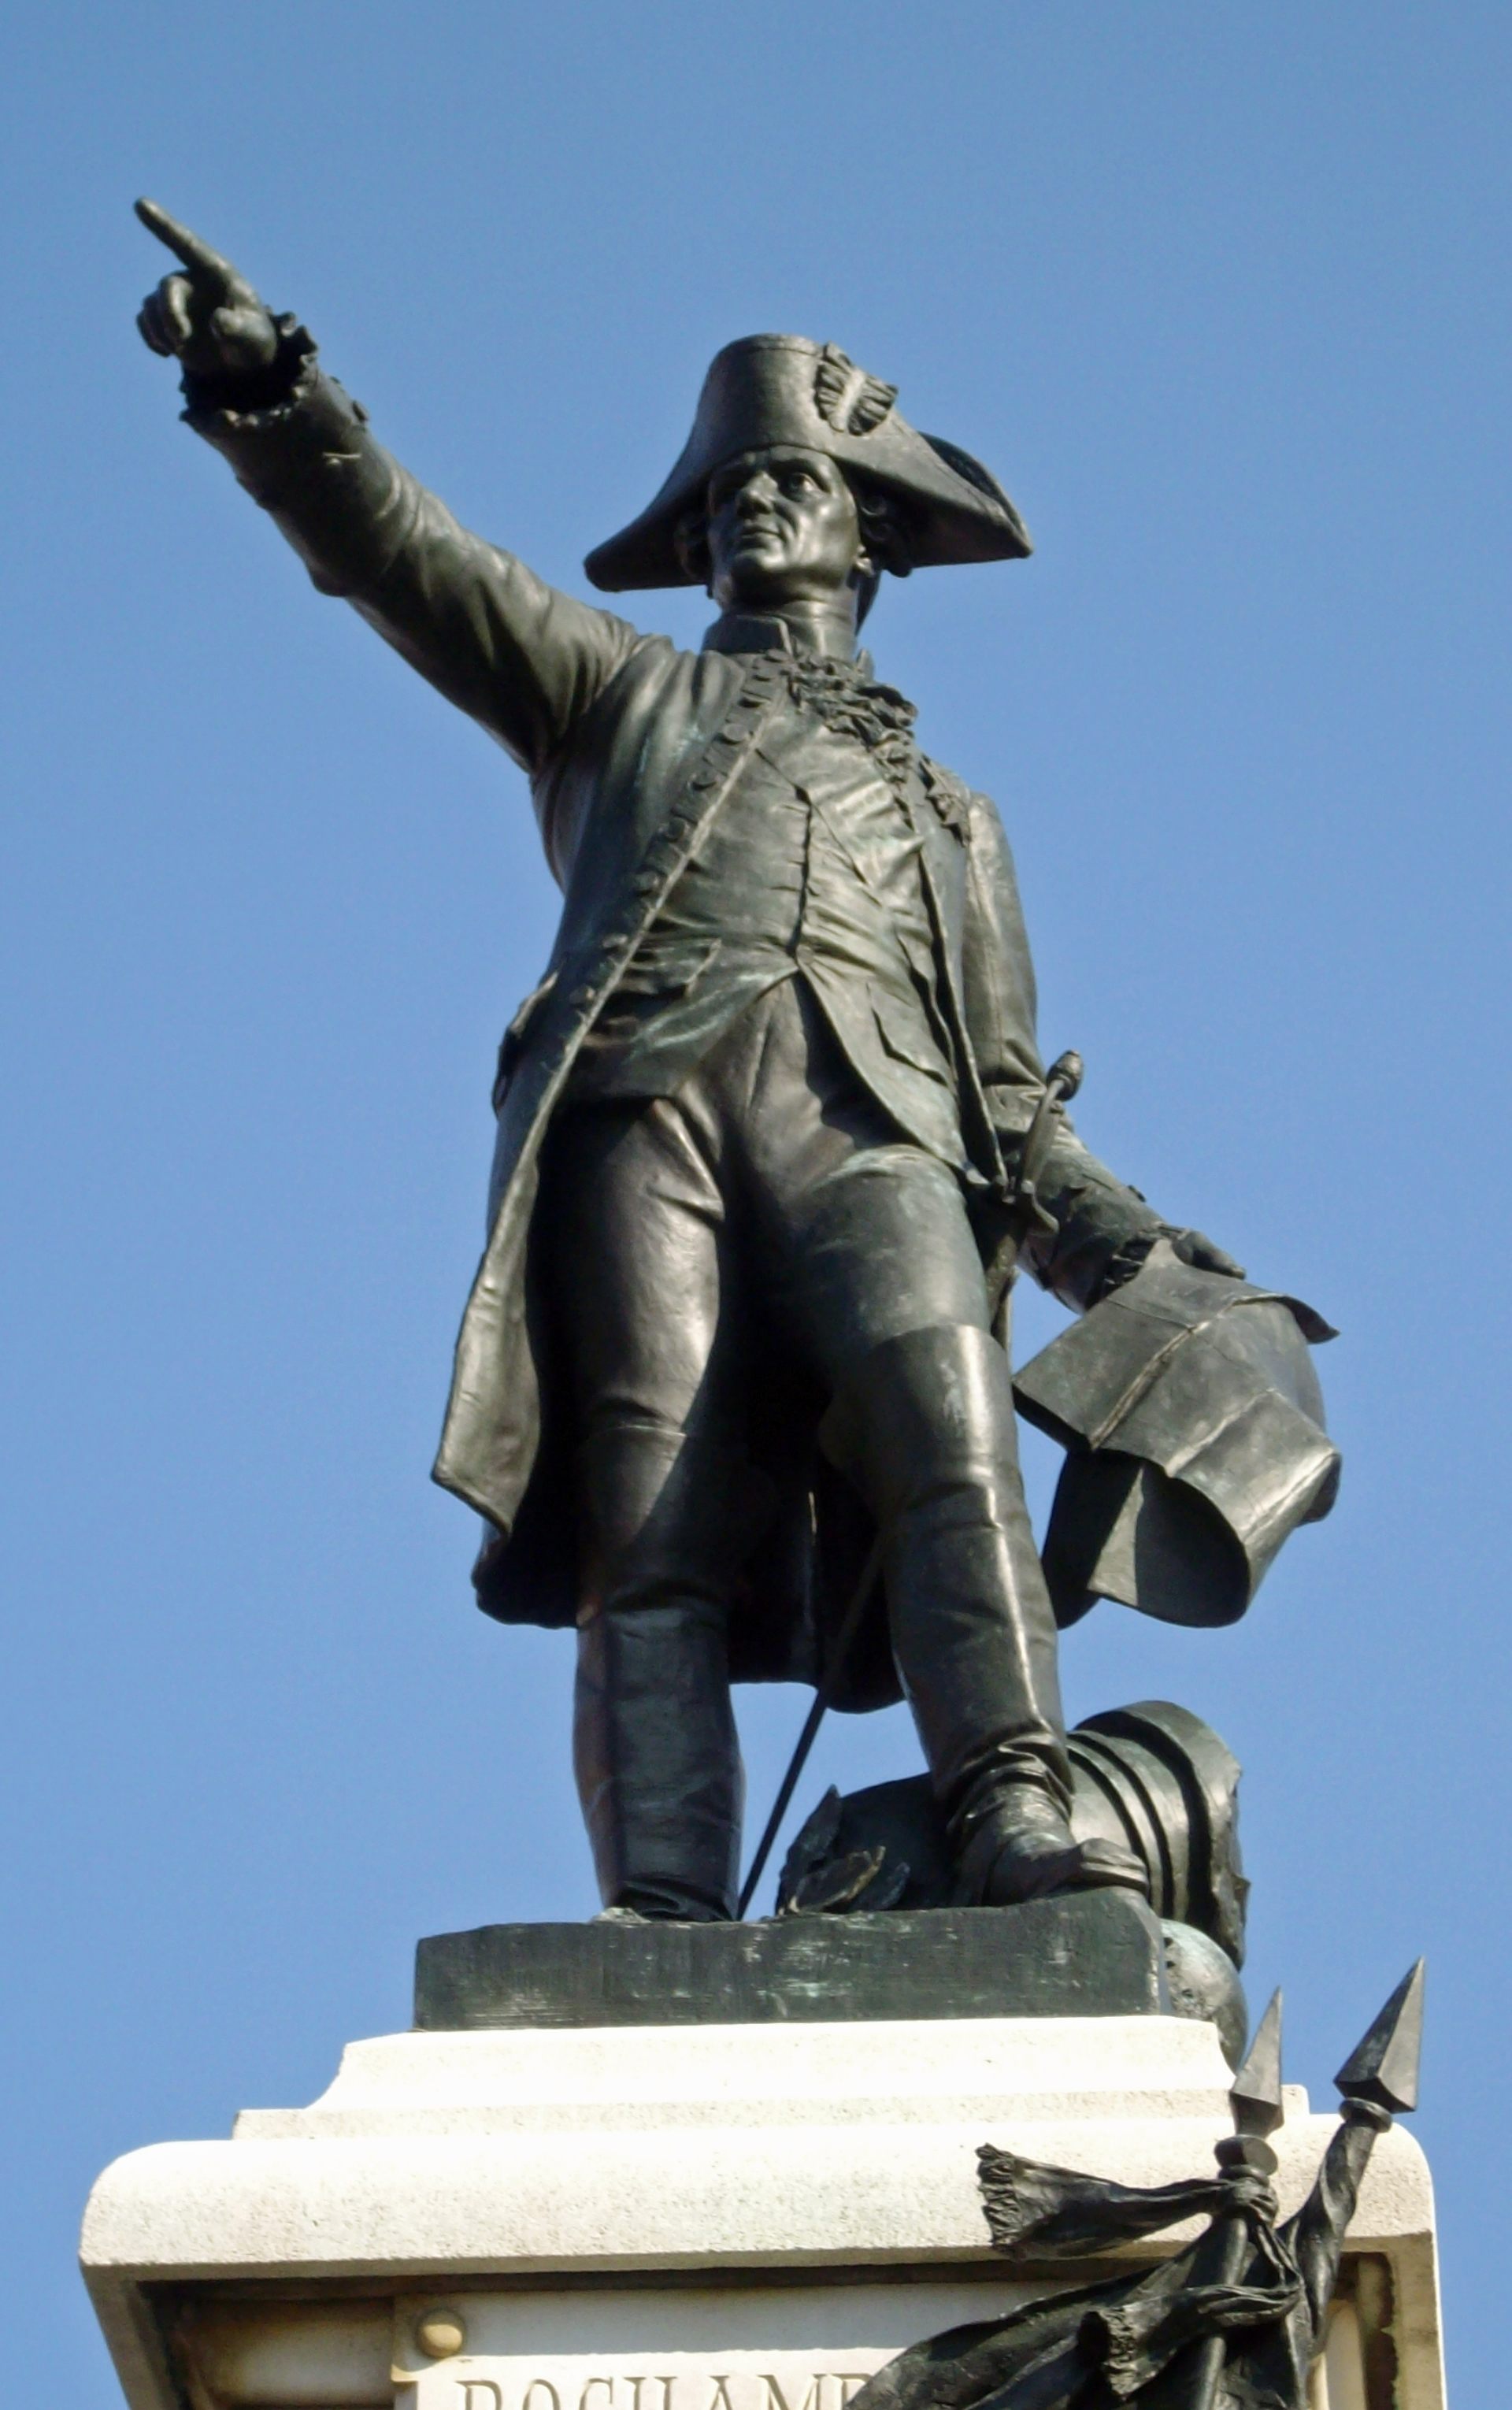 Rochambeau led French forces against Britain in the Battle of Yorktown